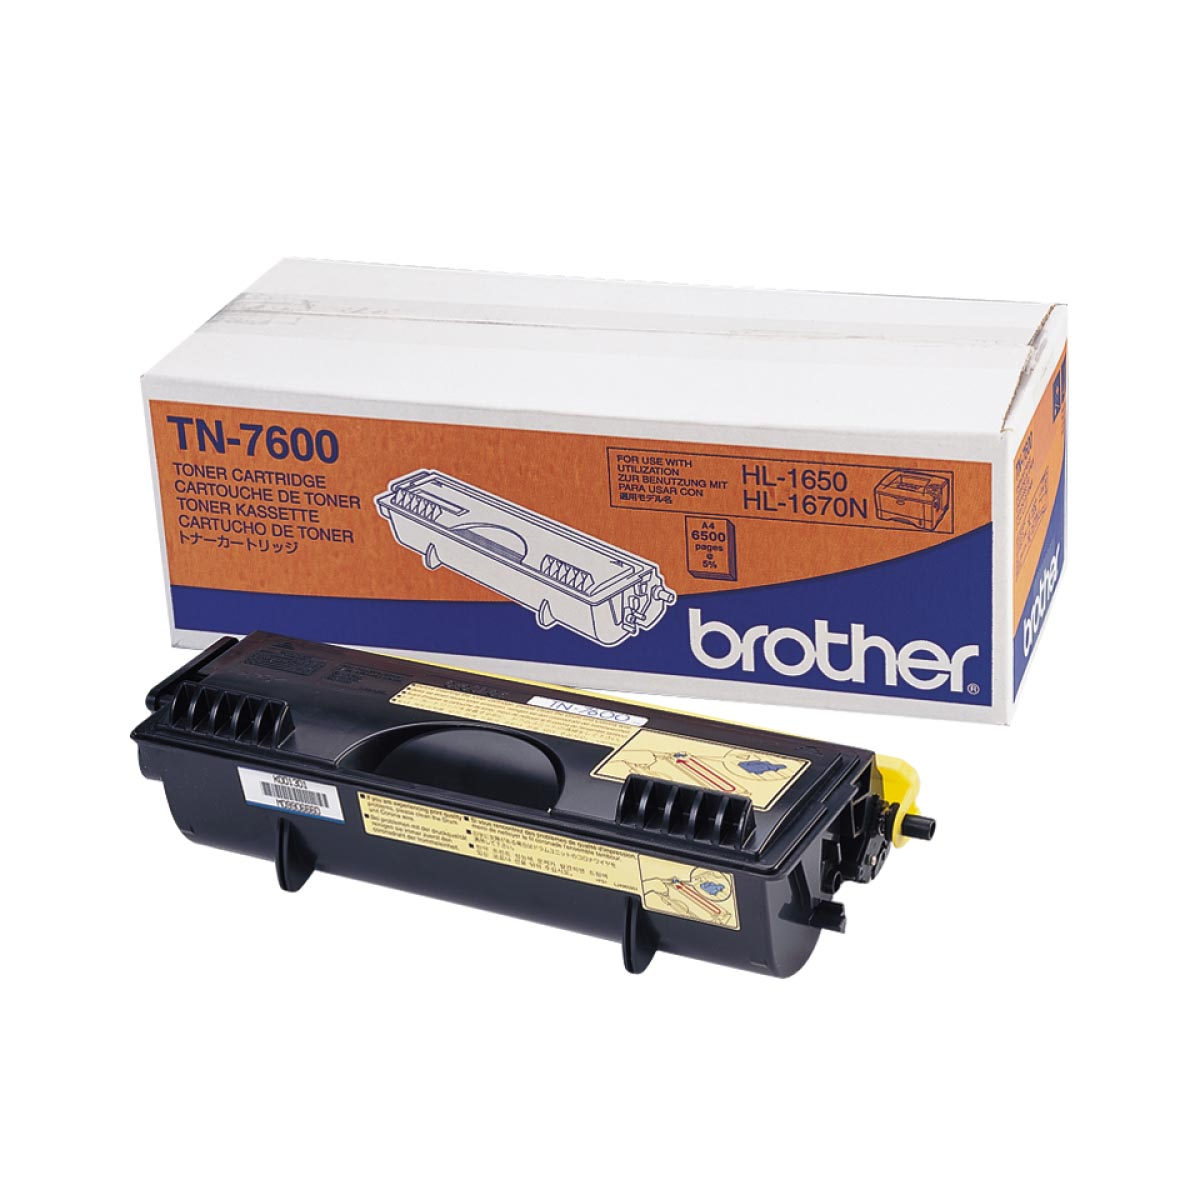 Cartucho de tóner original Brother TN7600 negro